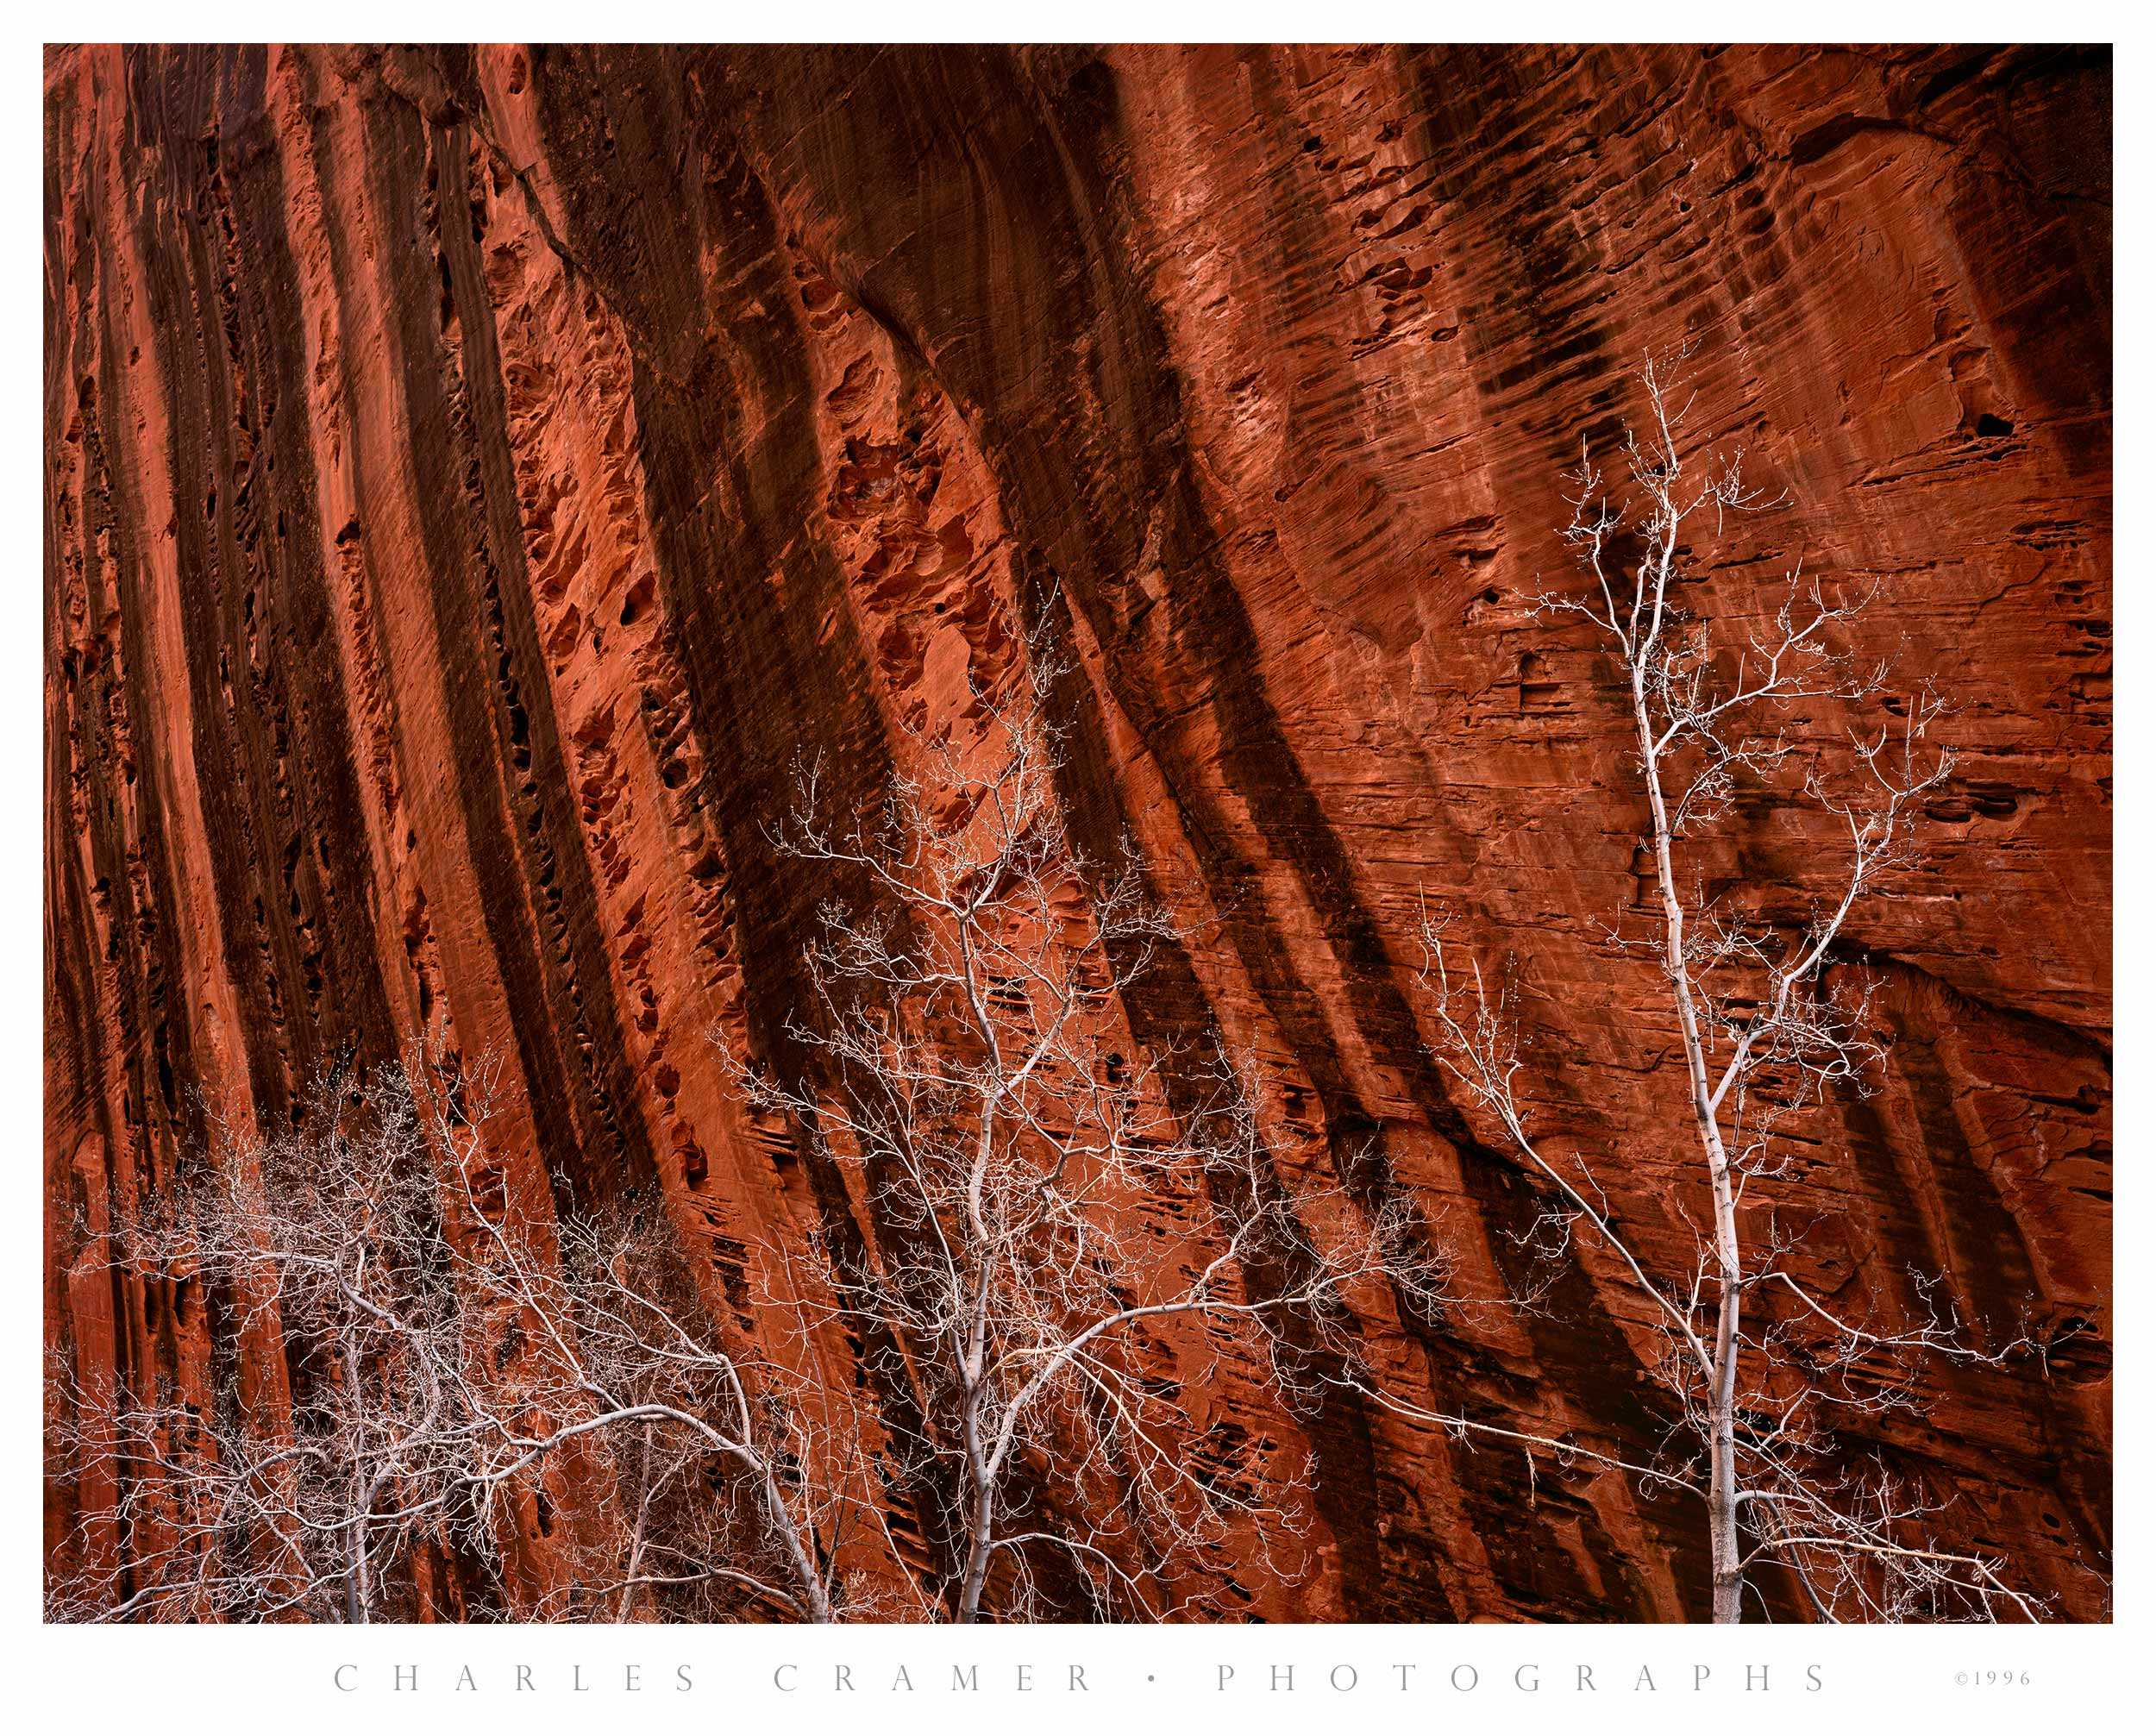 Budding Trees, Spring, Kolob Canyon, Zion